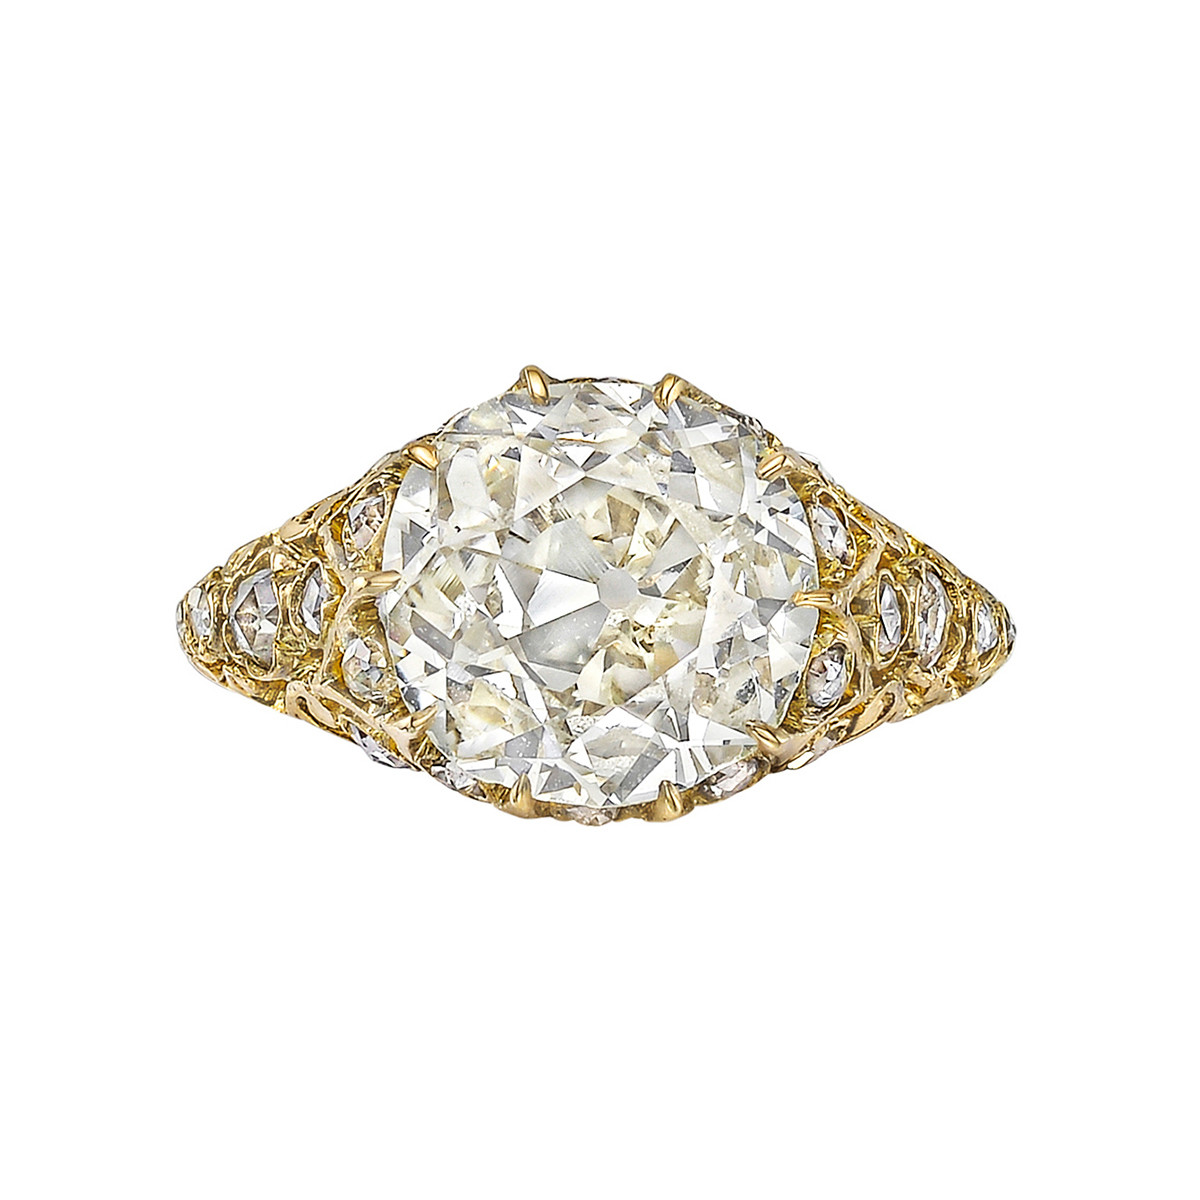 3.29ct Old Mine-Cut Diamond Antique Ring